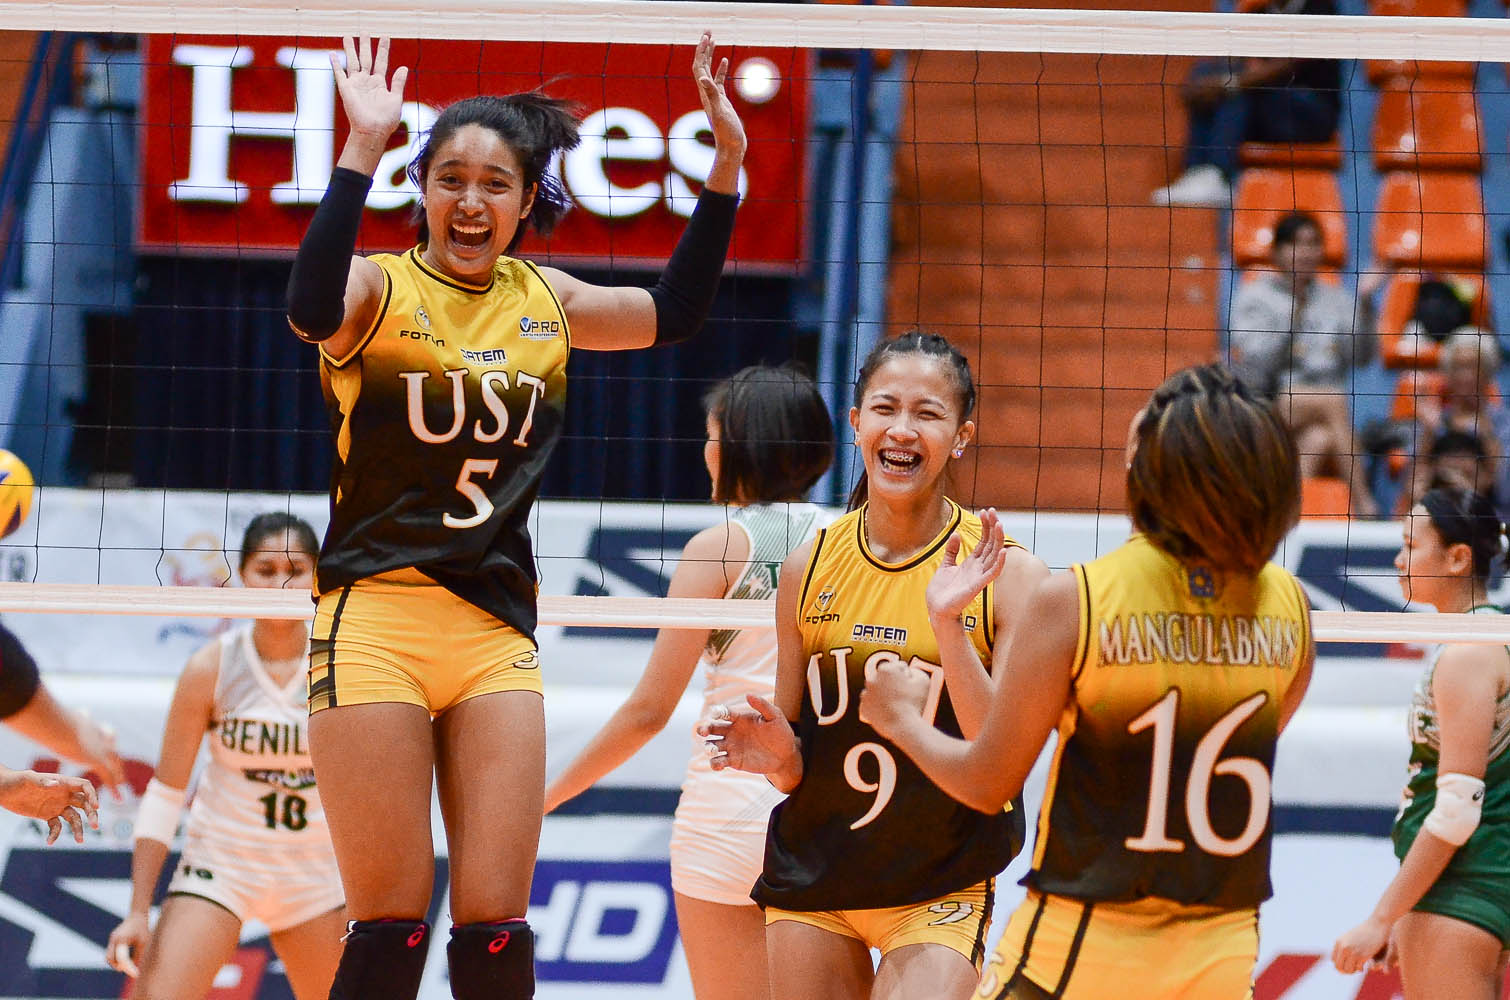 PVL-Collegiate-UST-CSB-Hernandez-Laure-1717 Imee Hernandez looks to replicate magic with Eya Laure in NT 2021 SEA Games News Volleyball  - philippine sports news